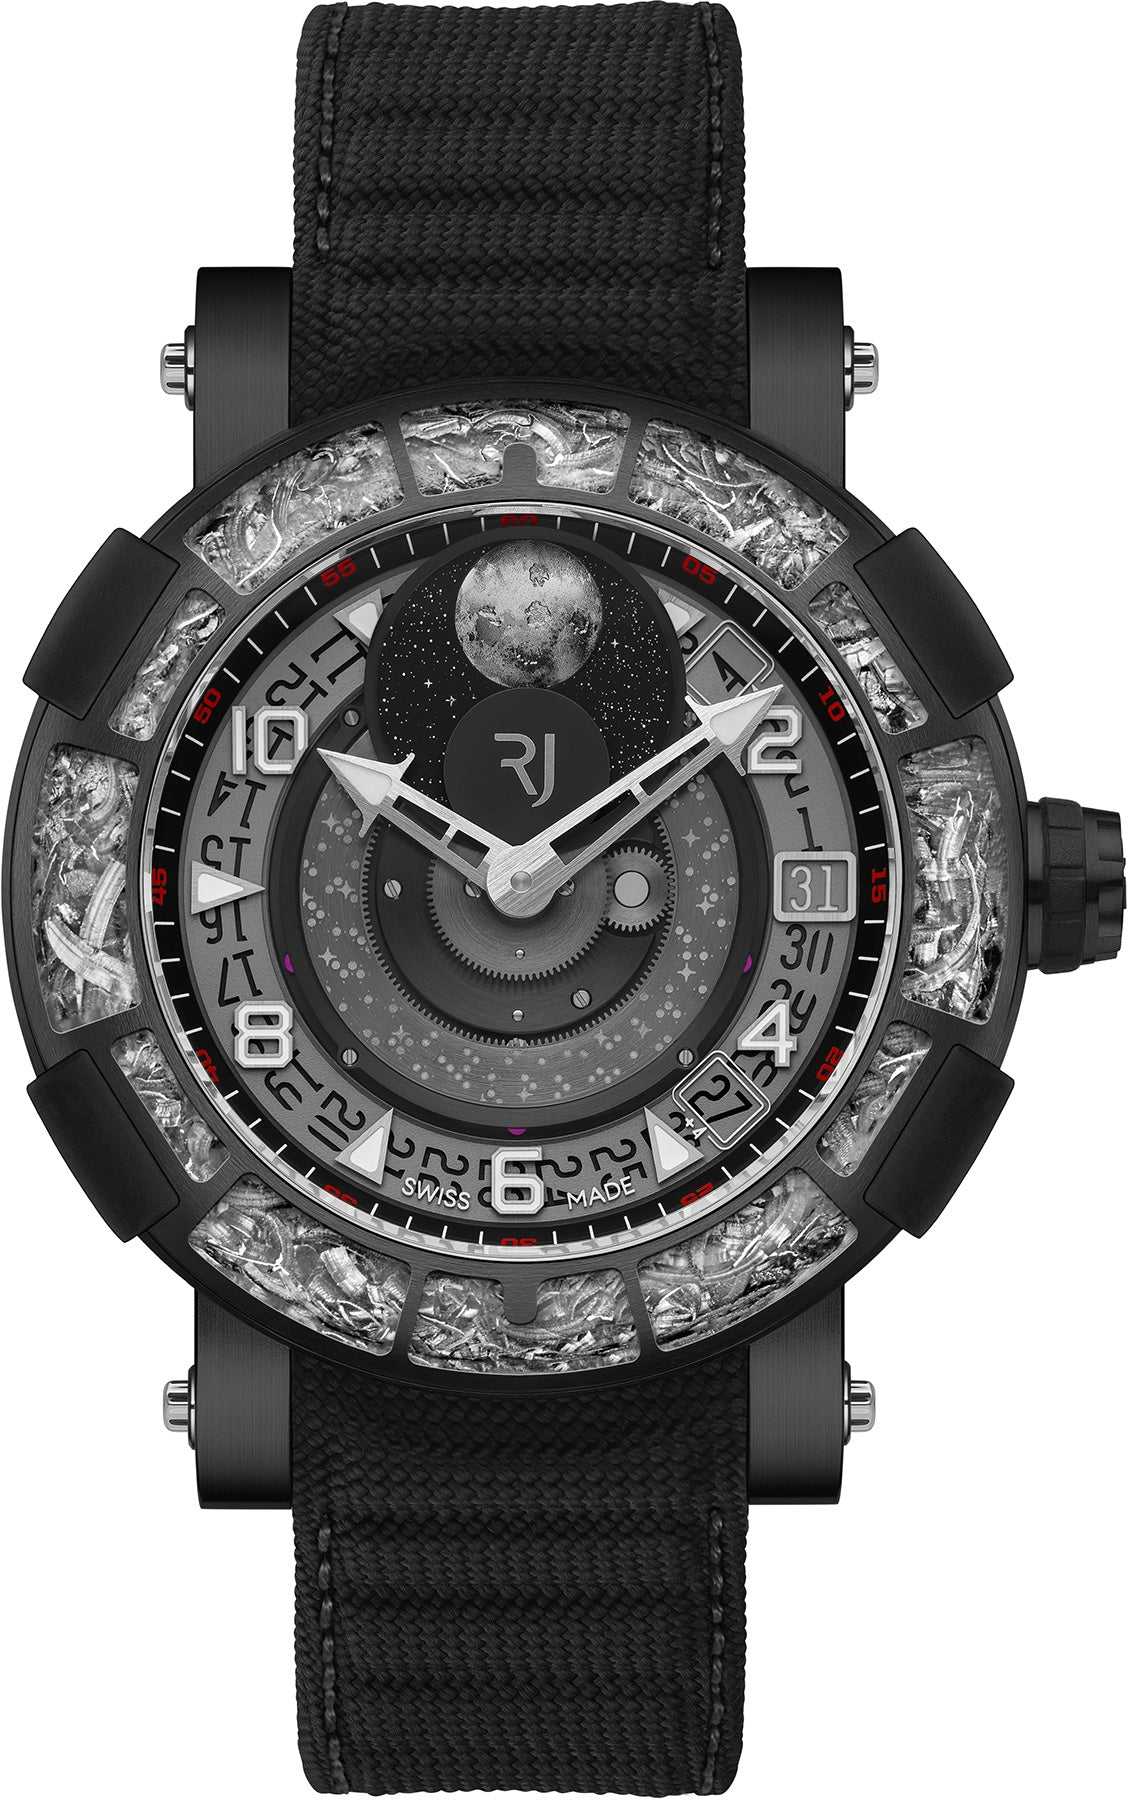 RJ Watches ARRAW 6919 Ceramic 45mm